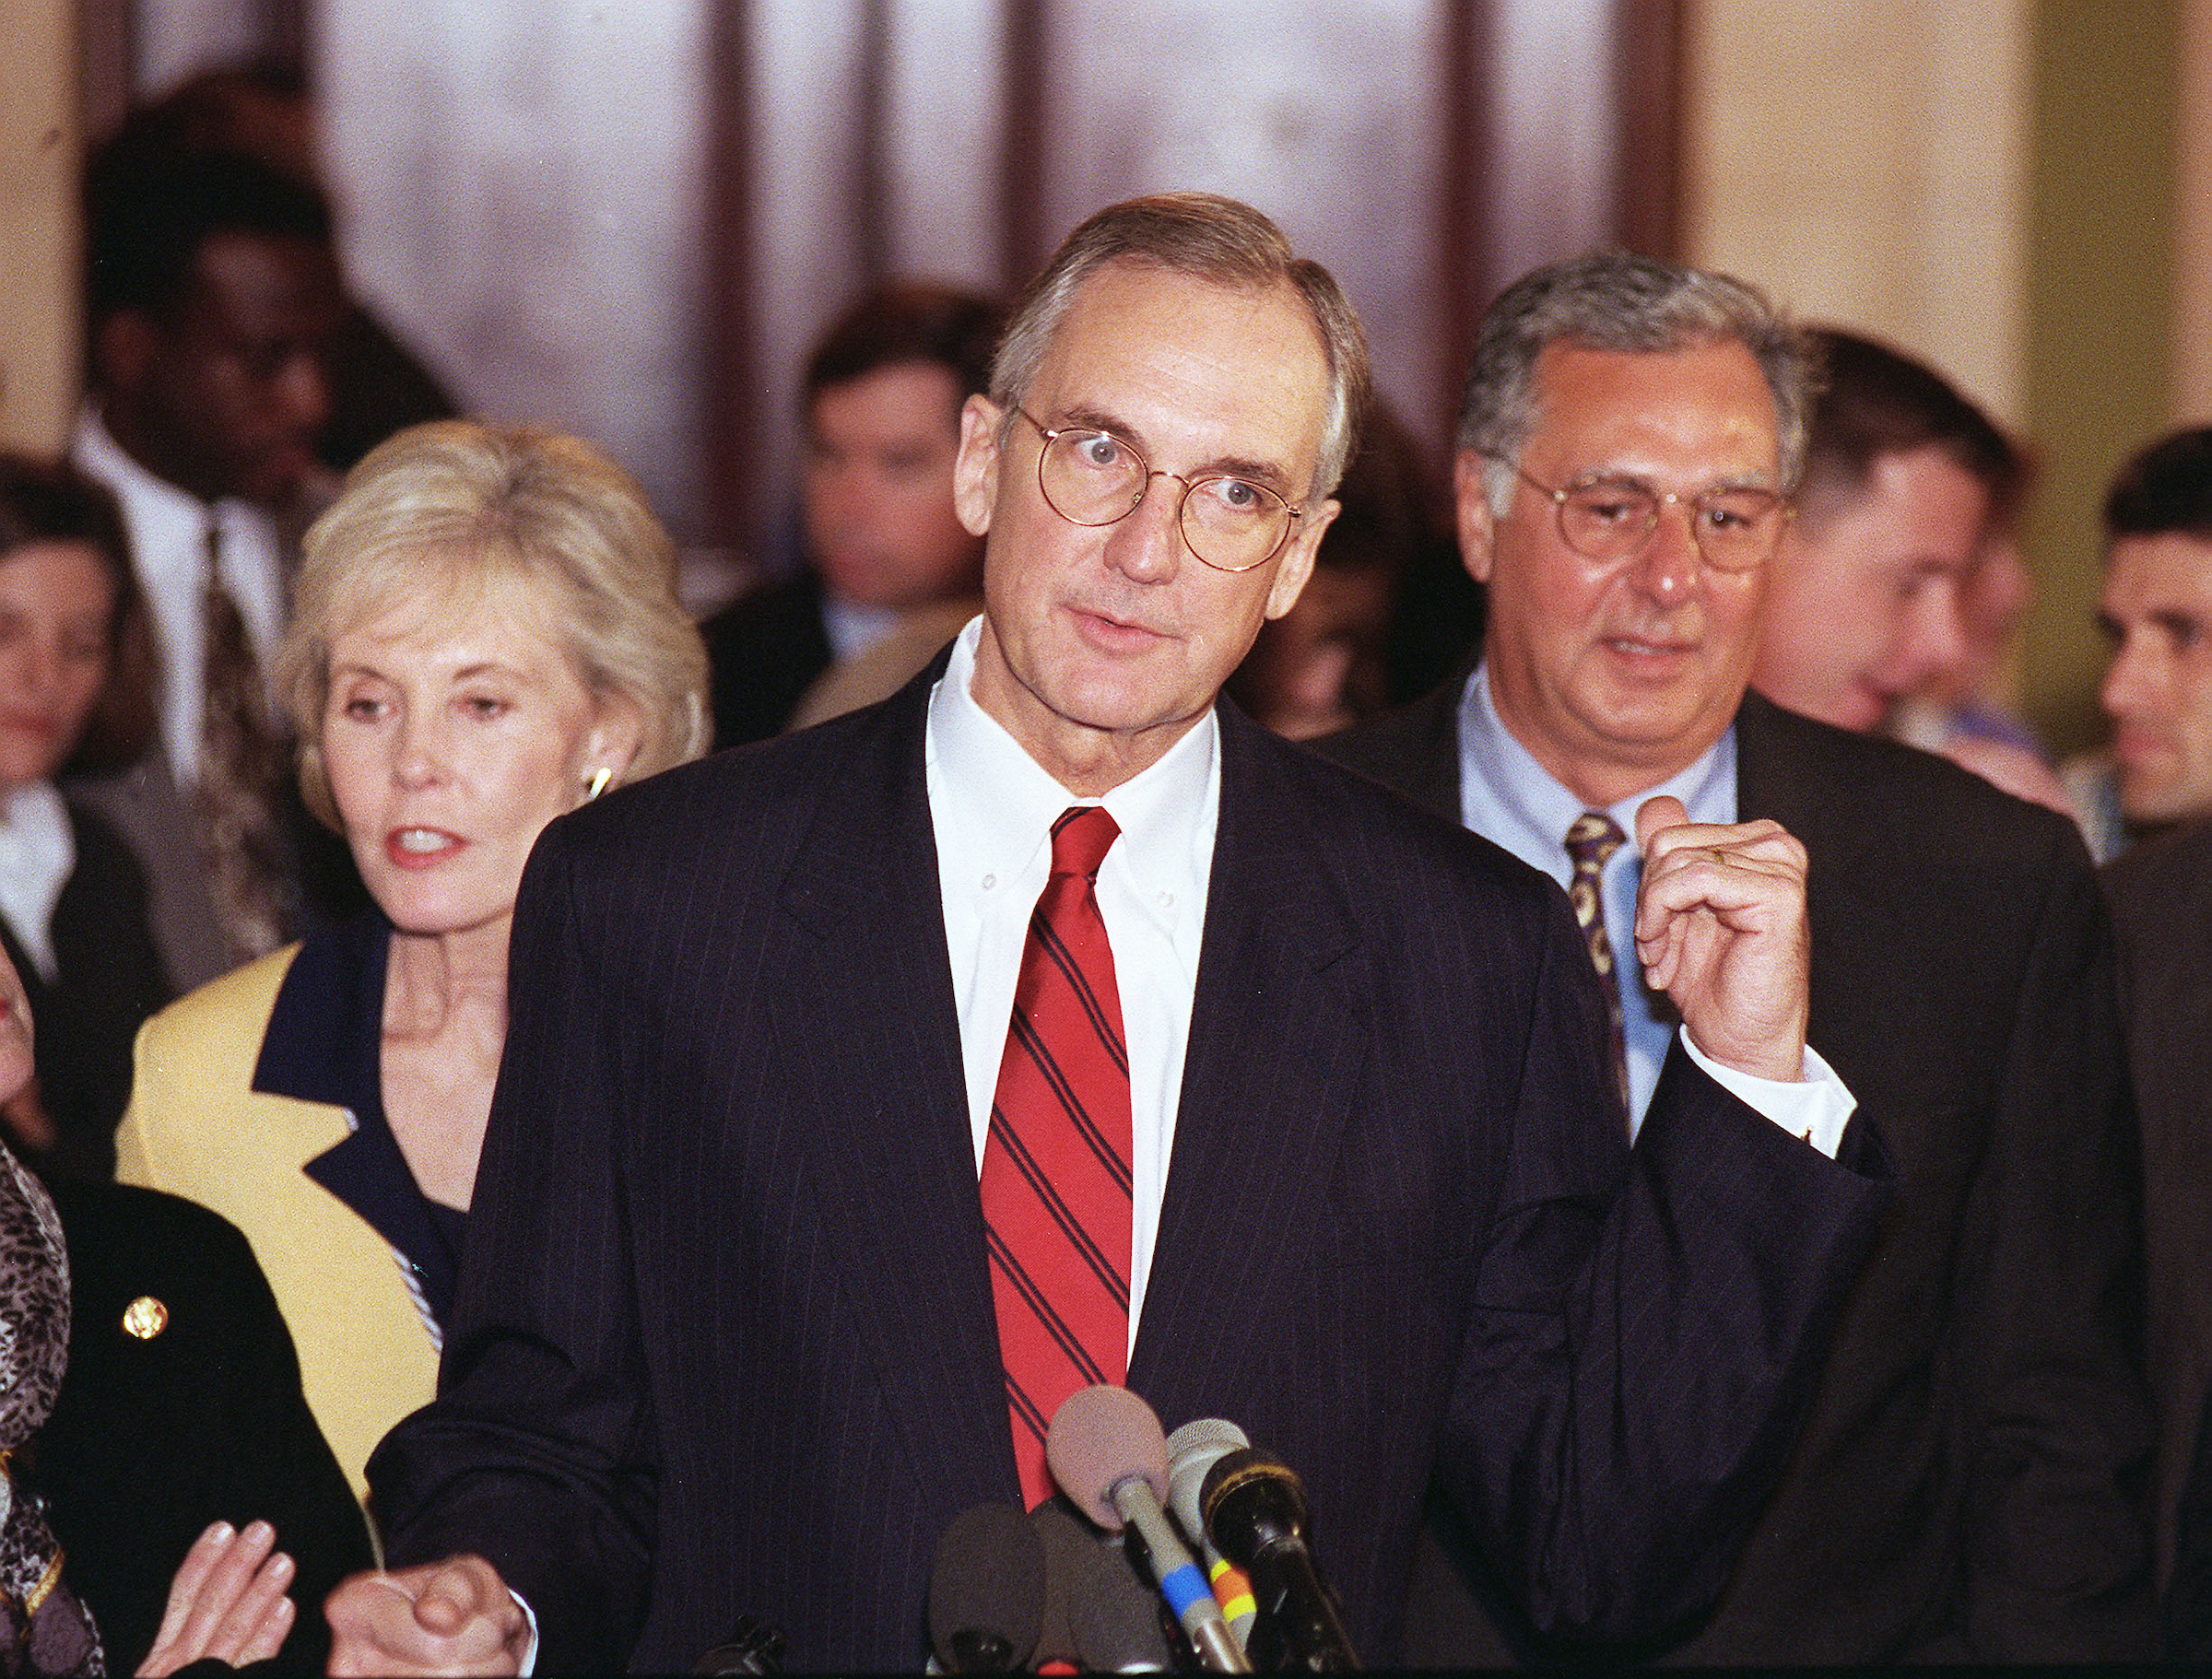 Bob Livingston,R-La., in 1998 after being chosen for House Speaker by his conference. (CQ Roll Call File Photo)